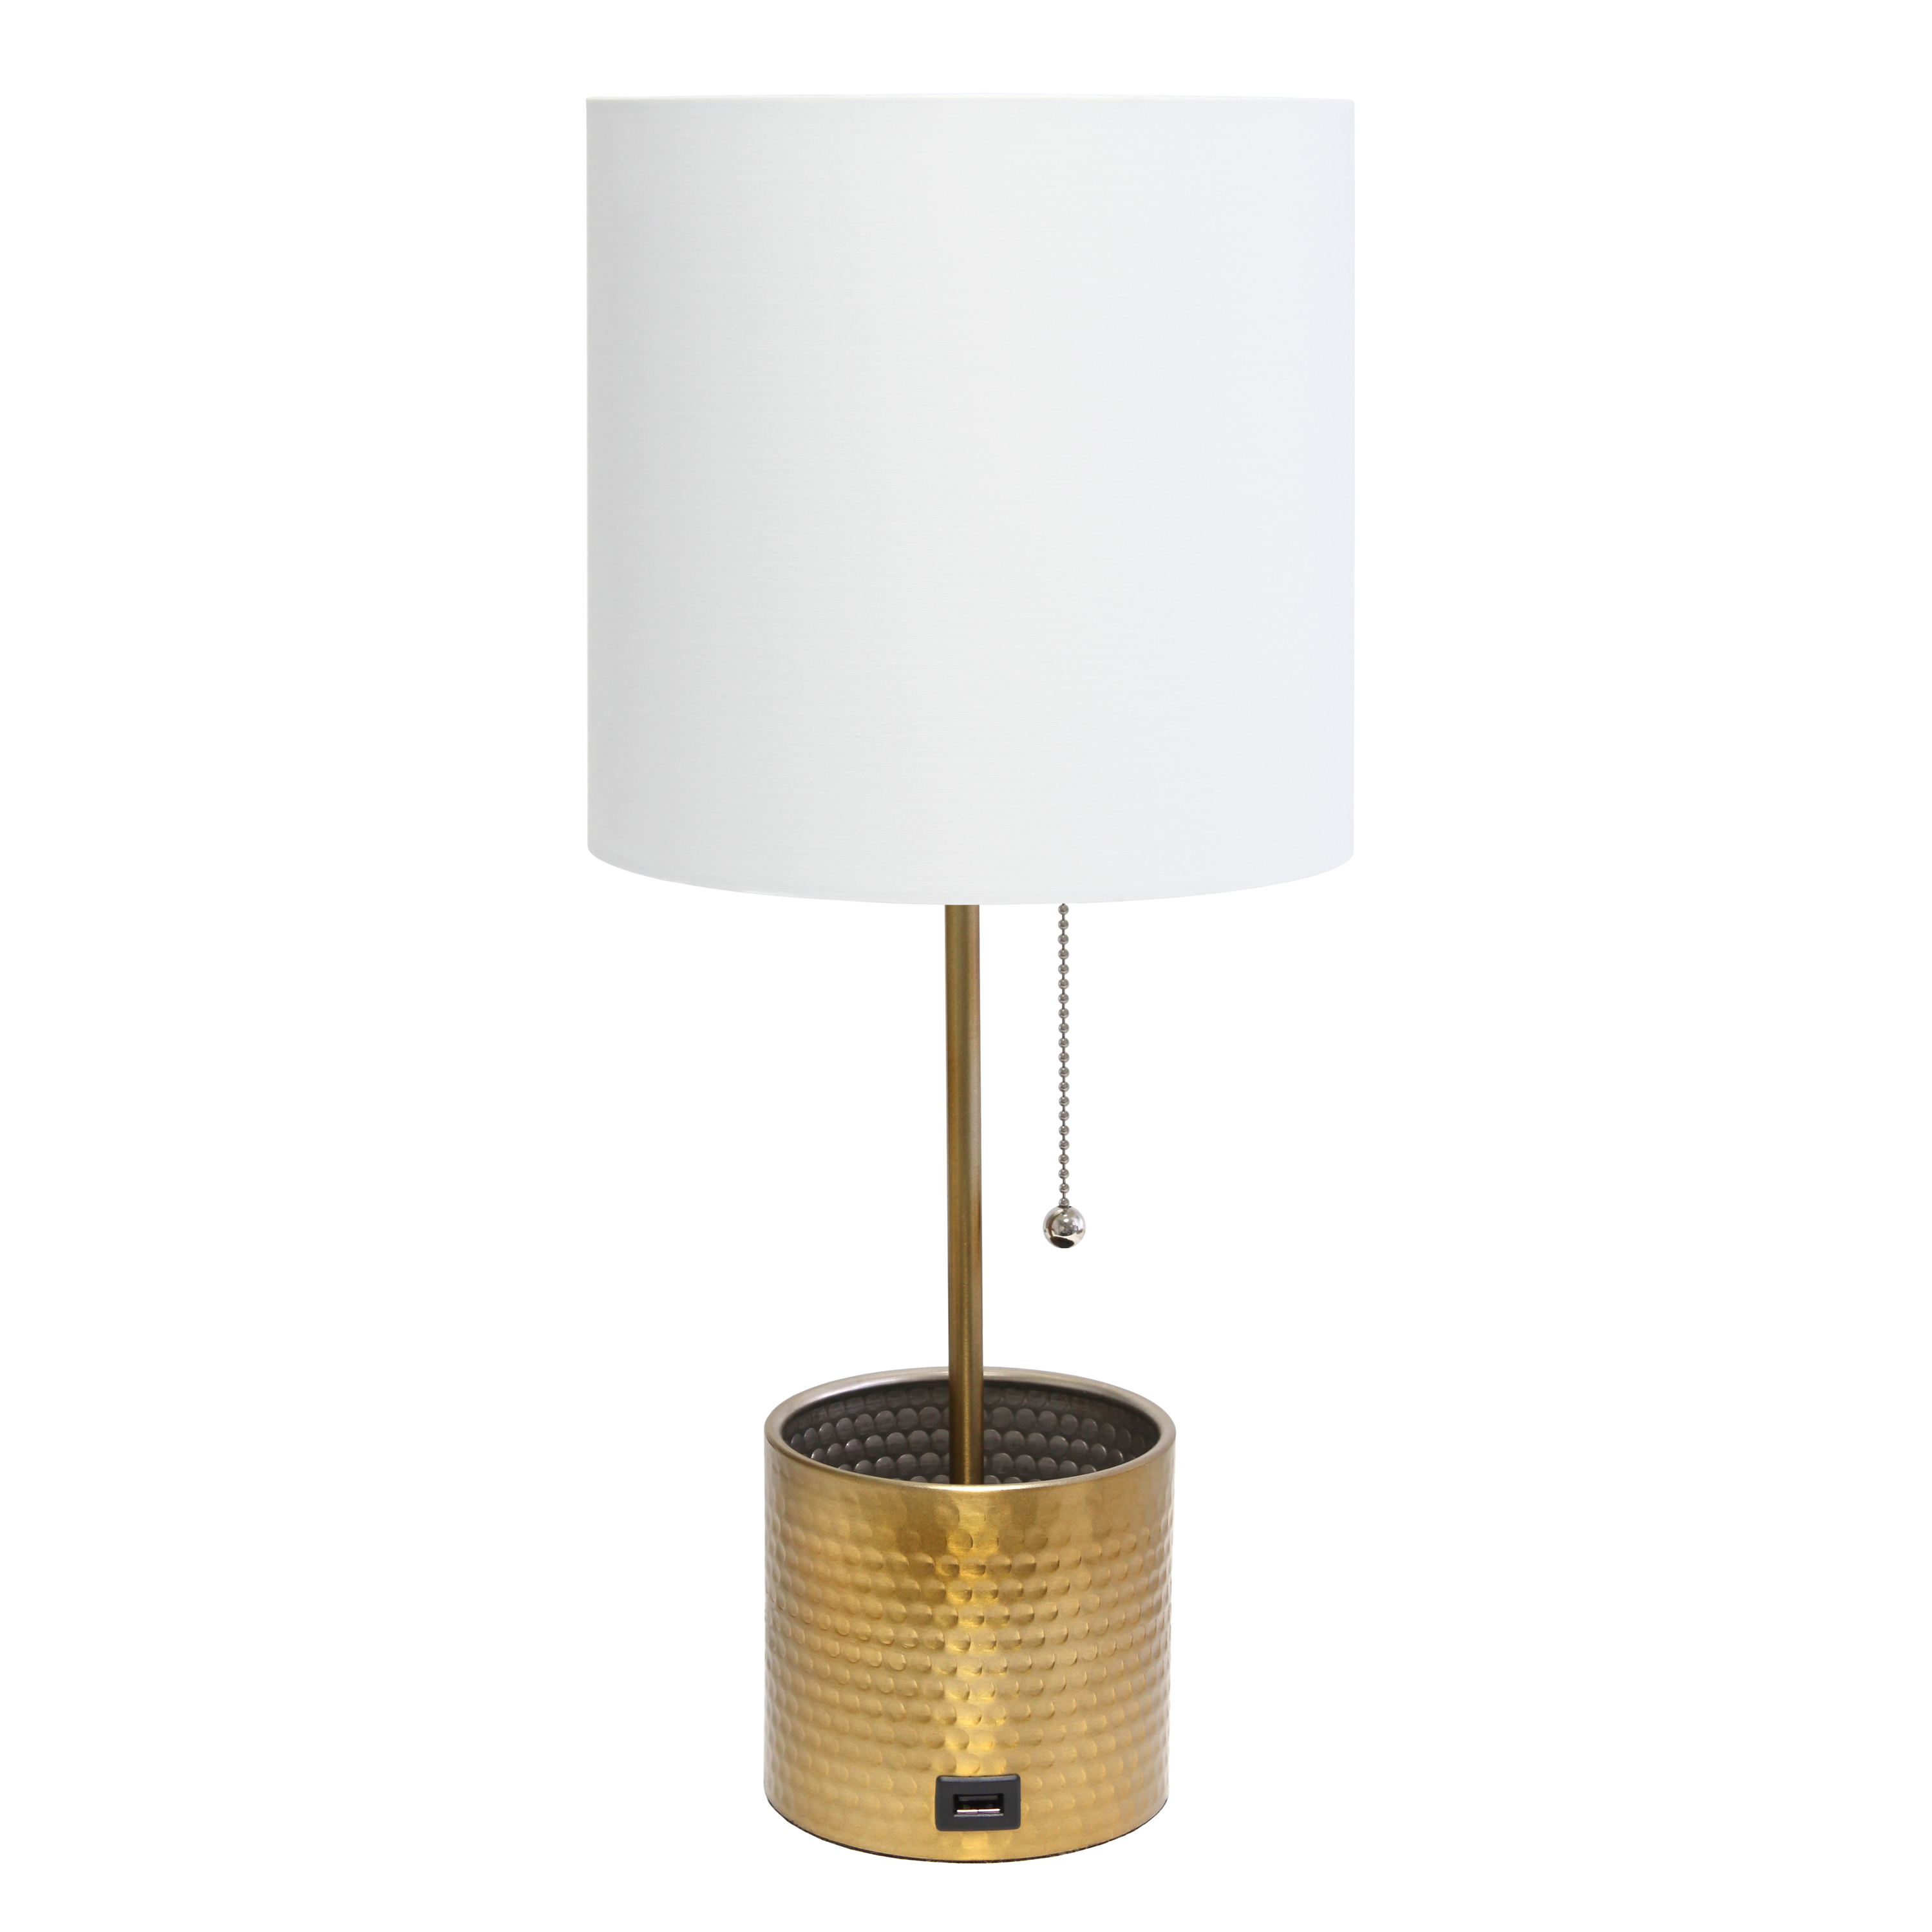 Simple Designs Hammered Metal Organizer Table Lamp with USB charging port and Fabric Shade, Gold